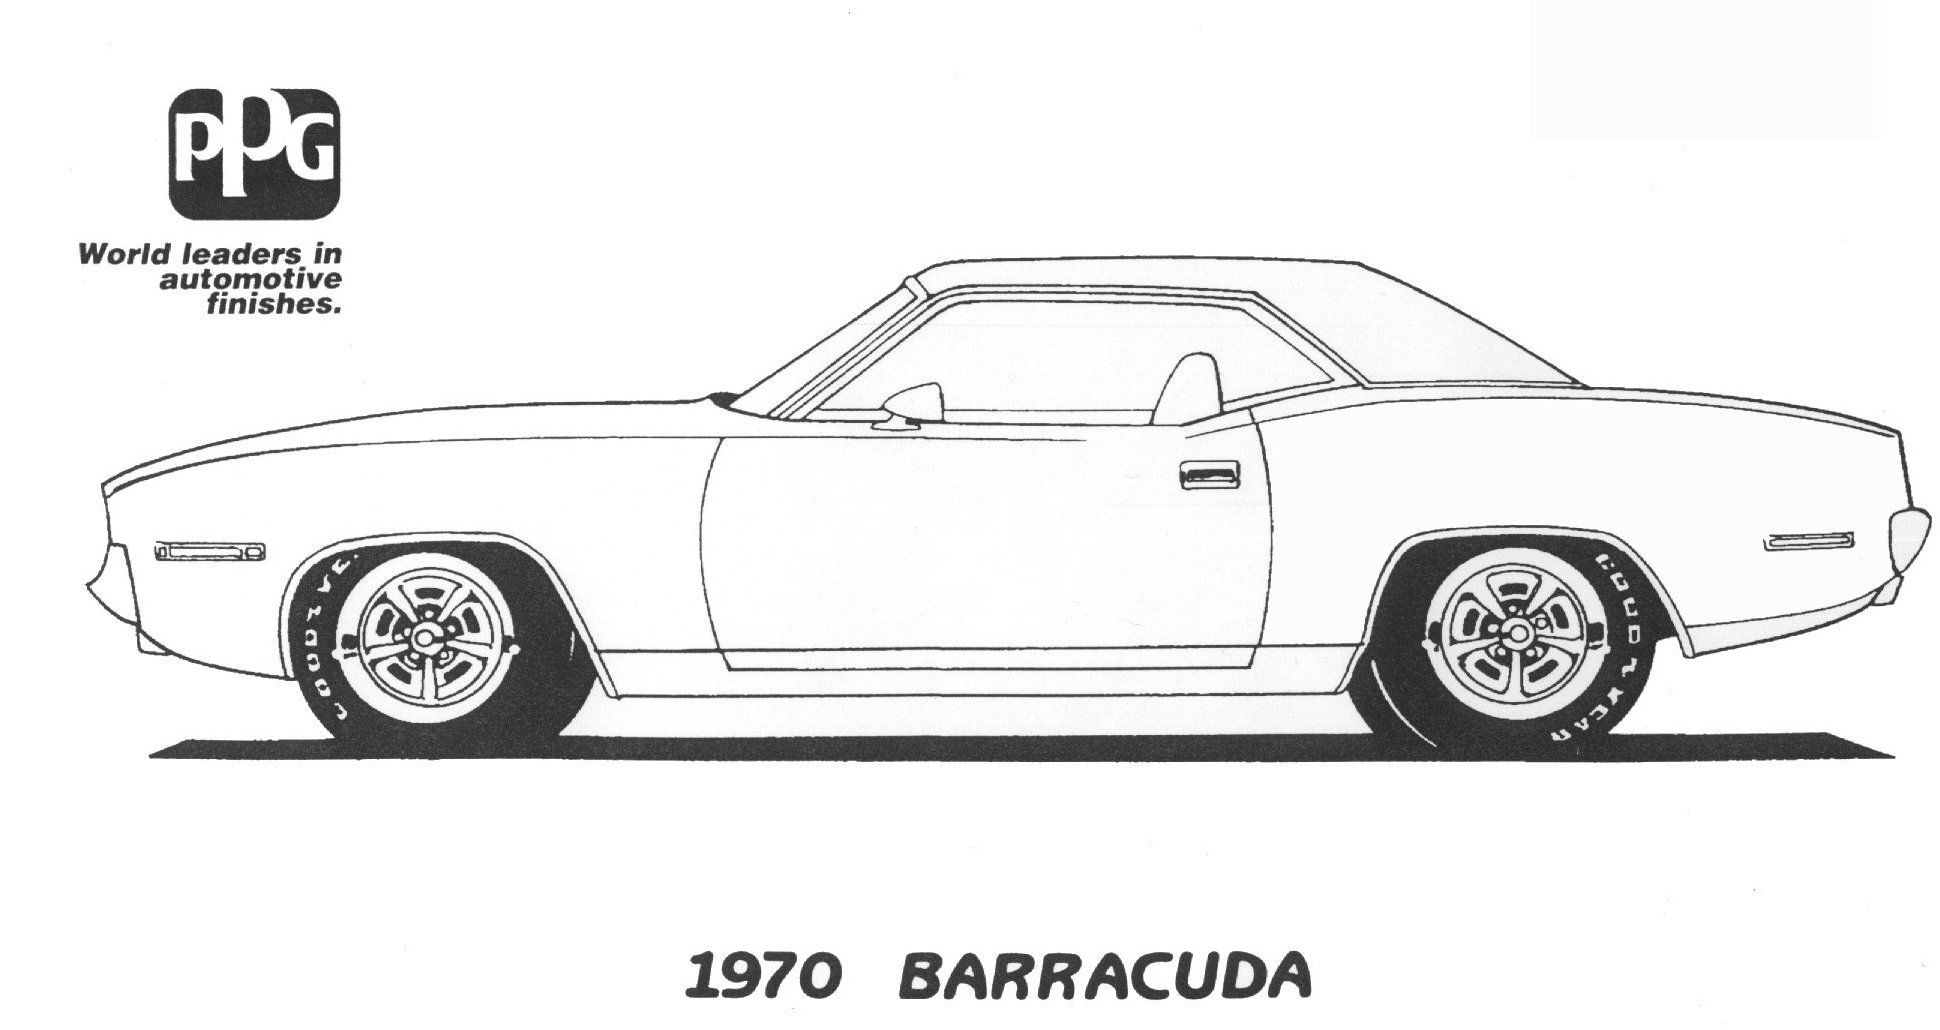 1970 Barracuda Coloring Page From Ppg Cars Coloring Pages